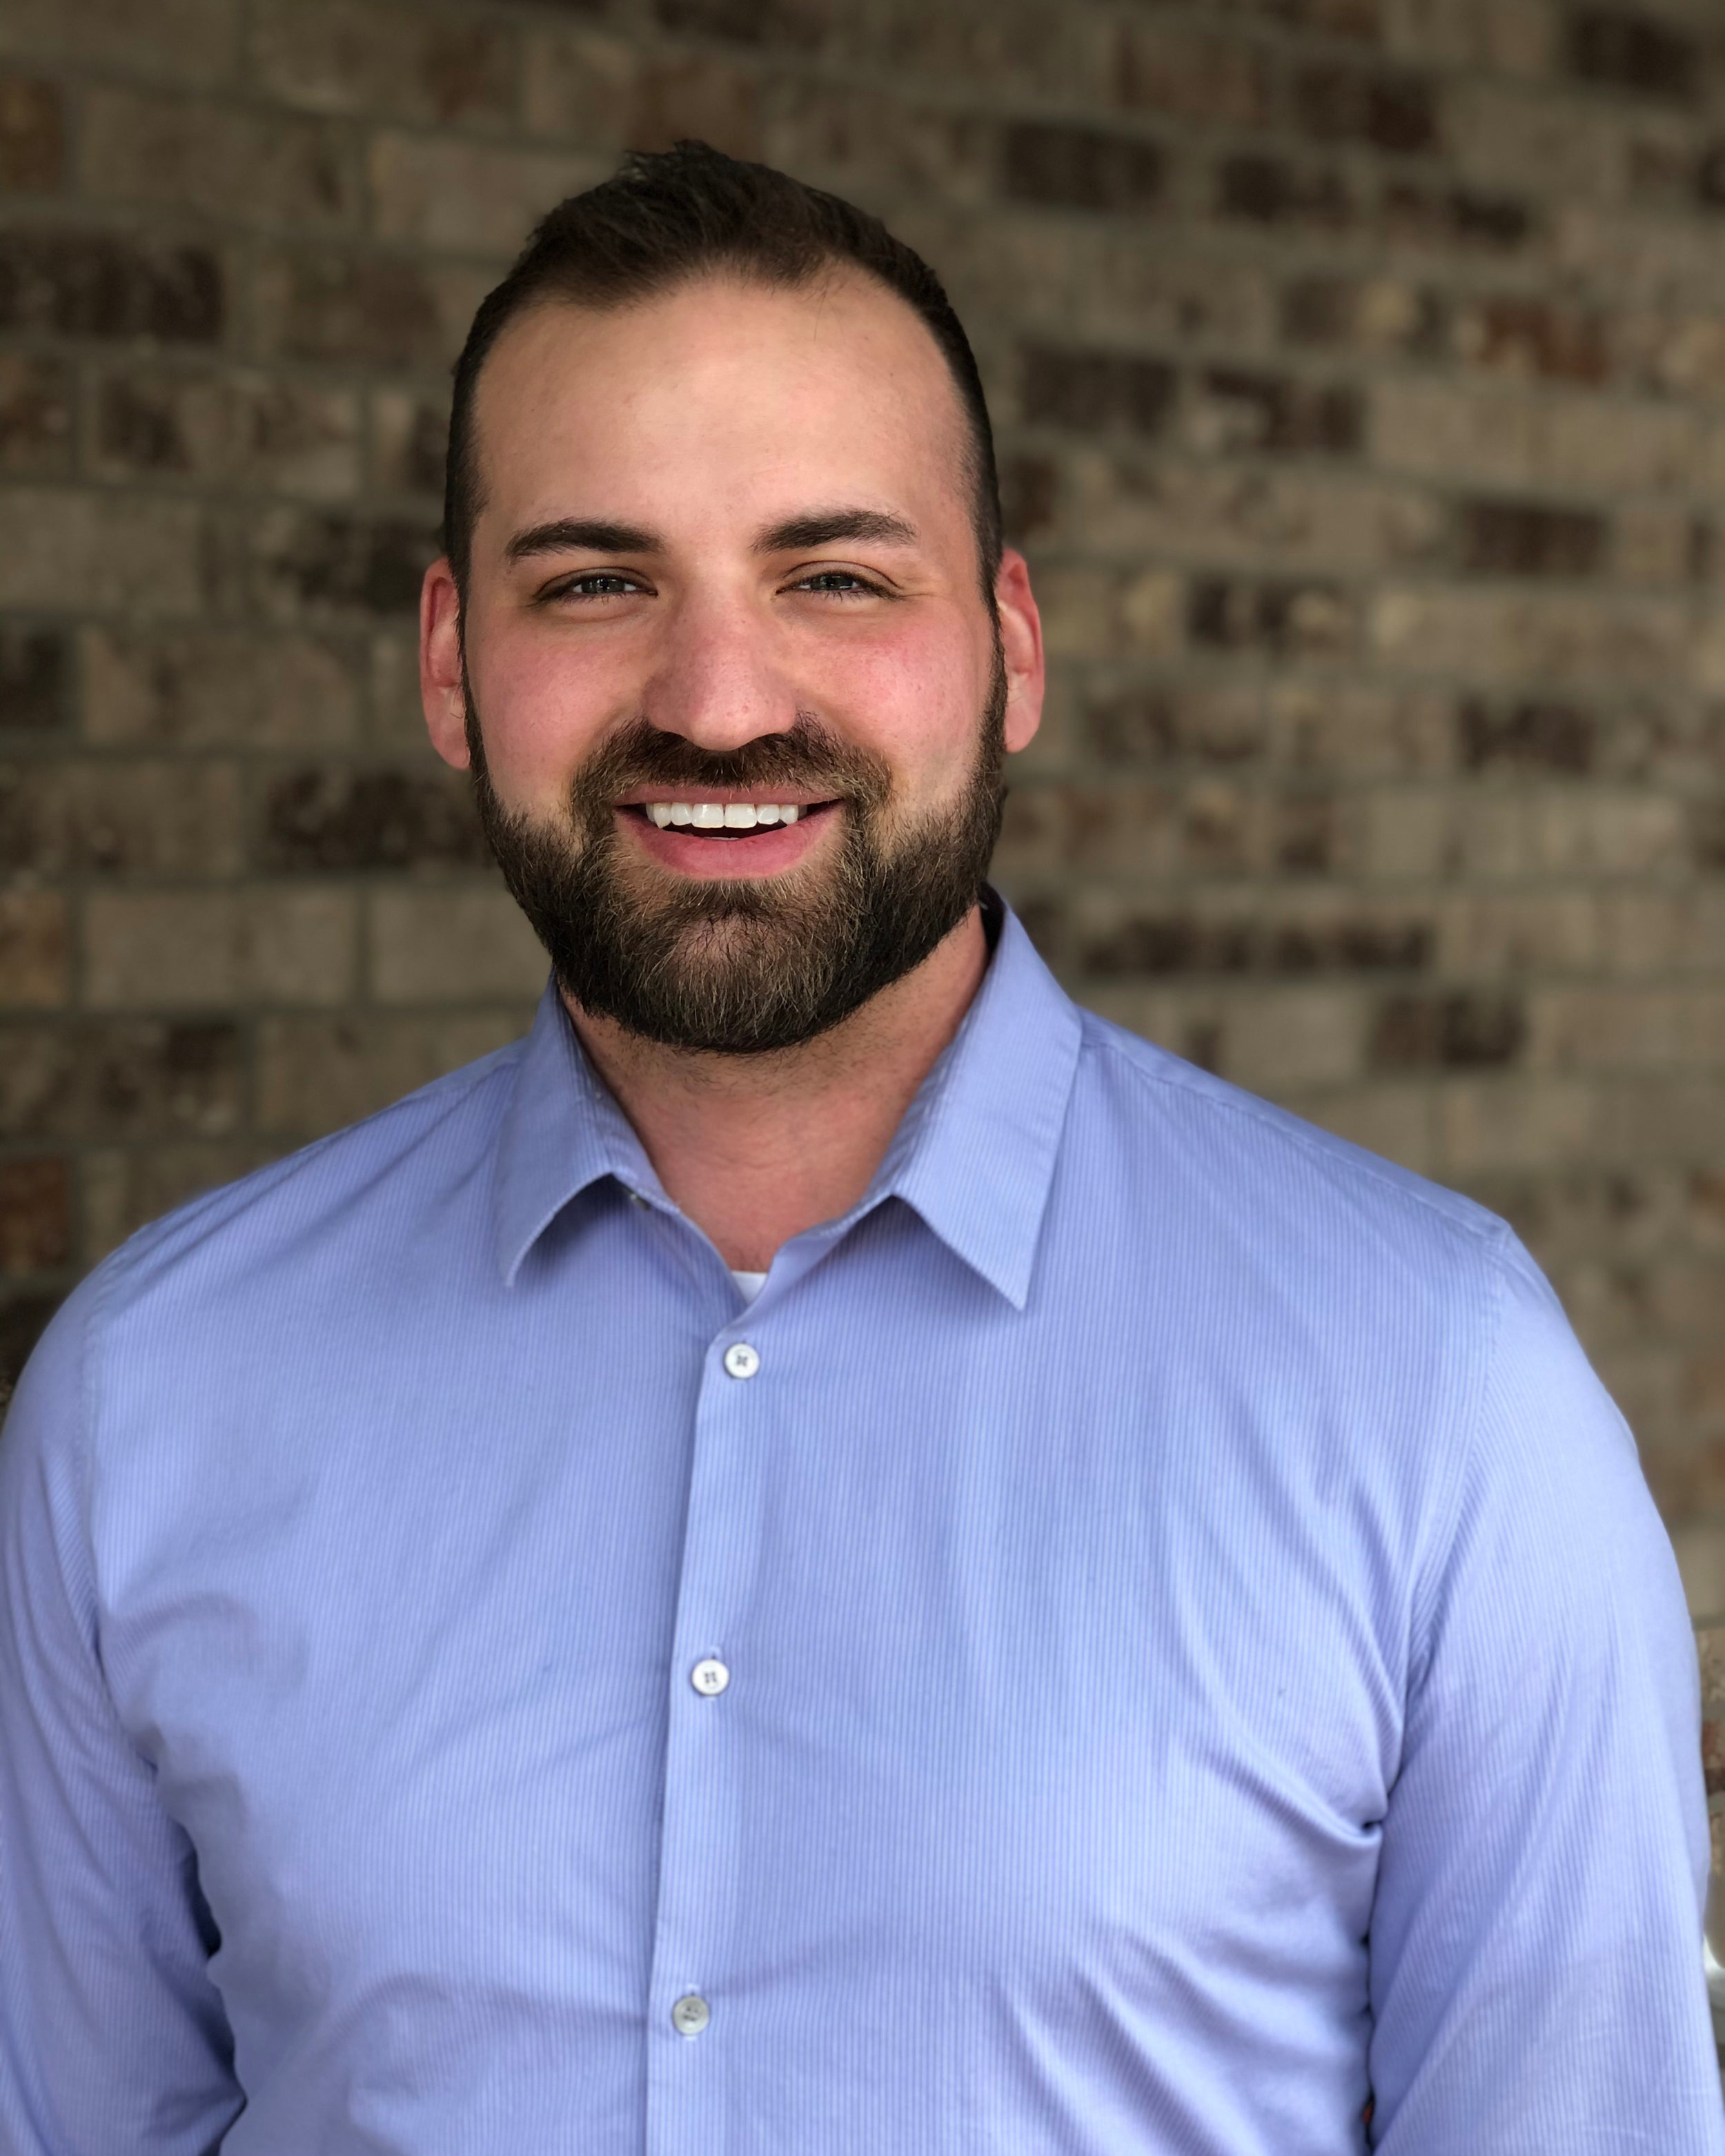 Cody Lawinger, Senior Account Manager